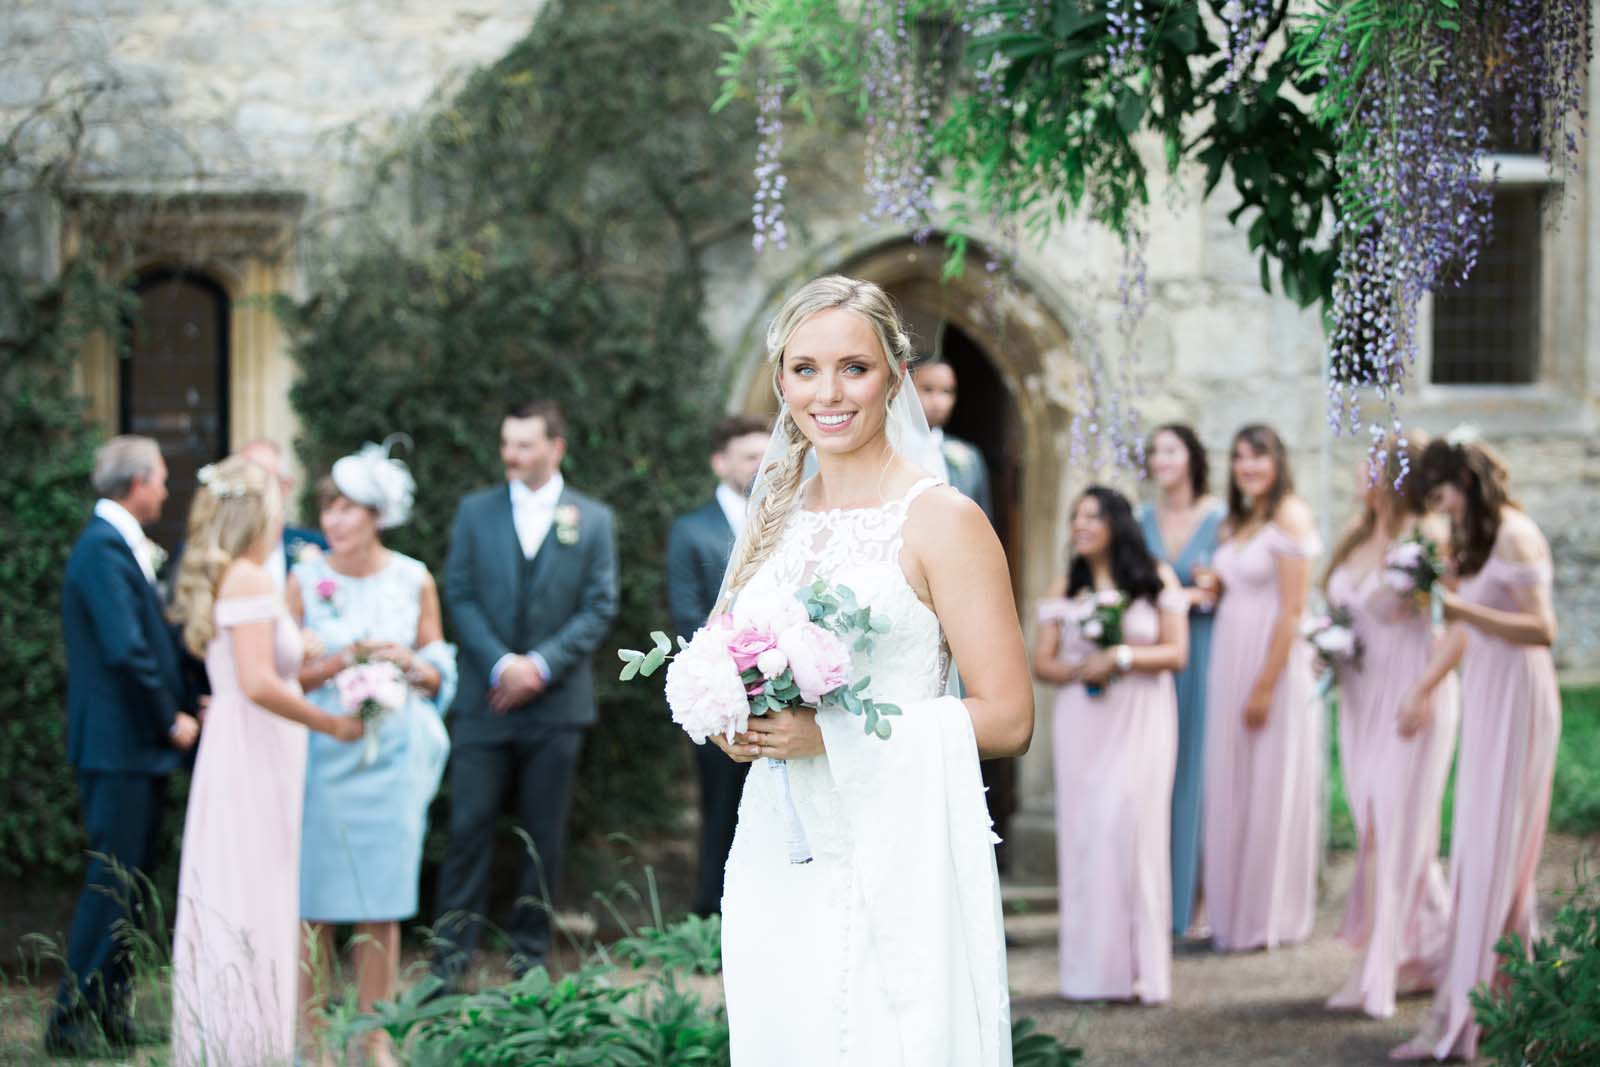 Notley Abbey Wedding Buckinghamshire Bride with Wedding Party in the background